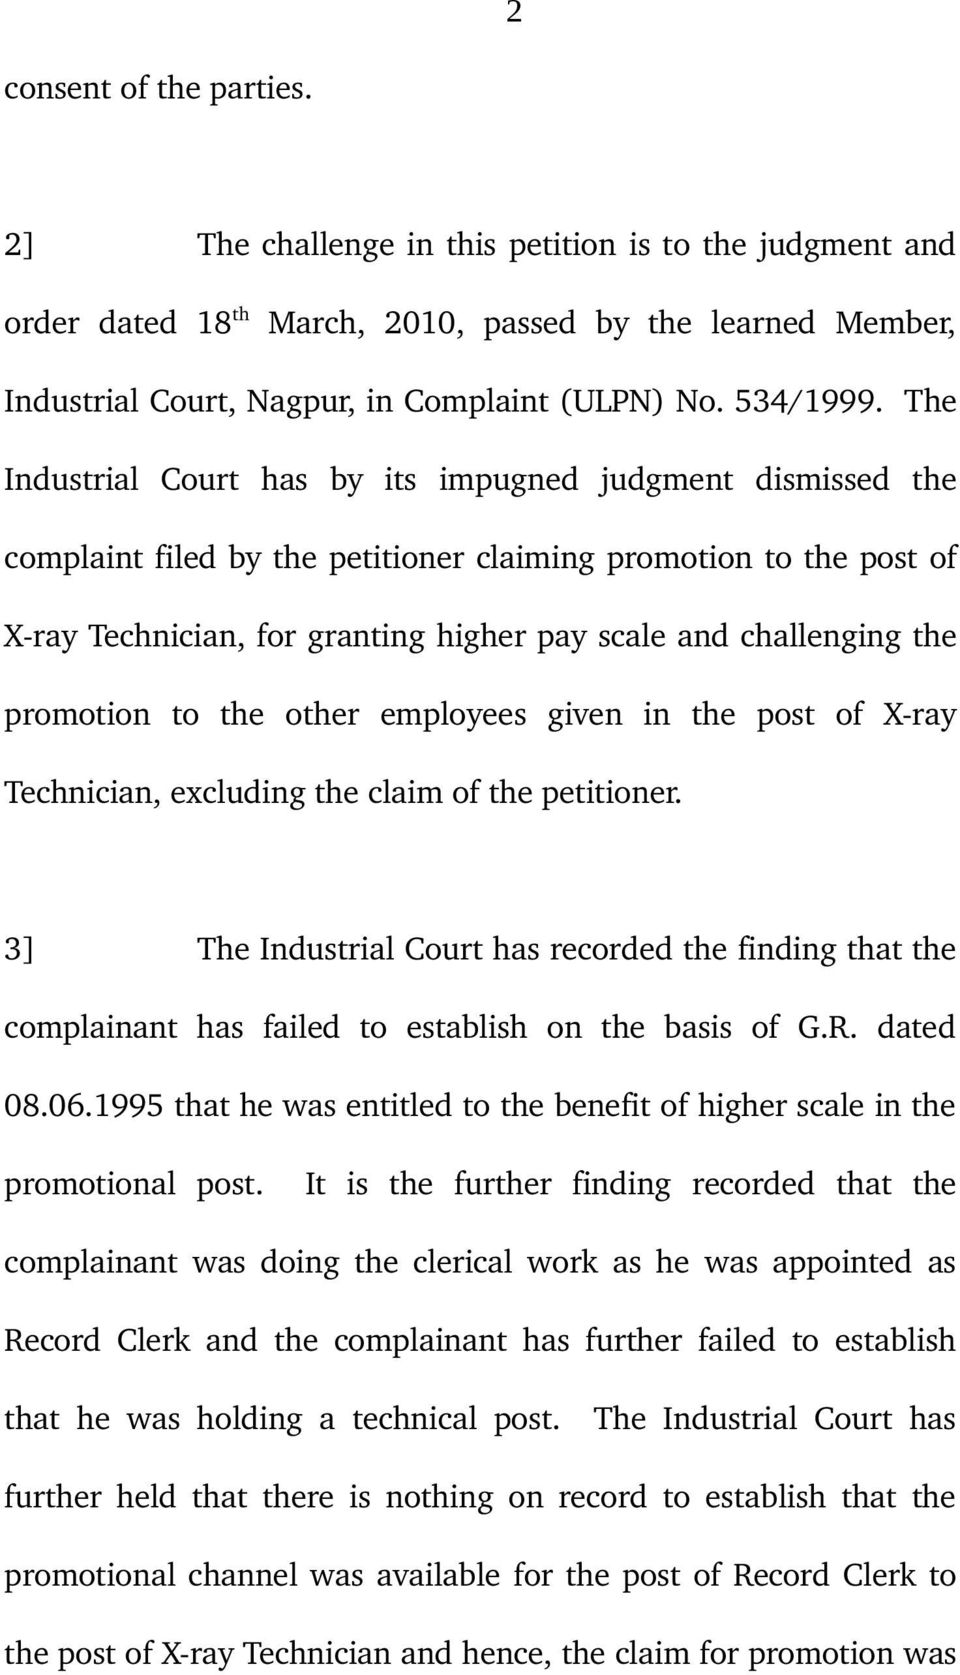 The Industrial Court has by its impugned judgment dismissed the complaint filed by the petitioner claiming promotion to the post of X ray Technician, for granting higher pay scale and challenging the